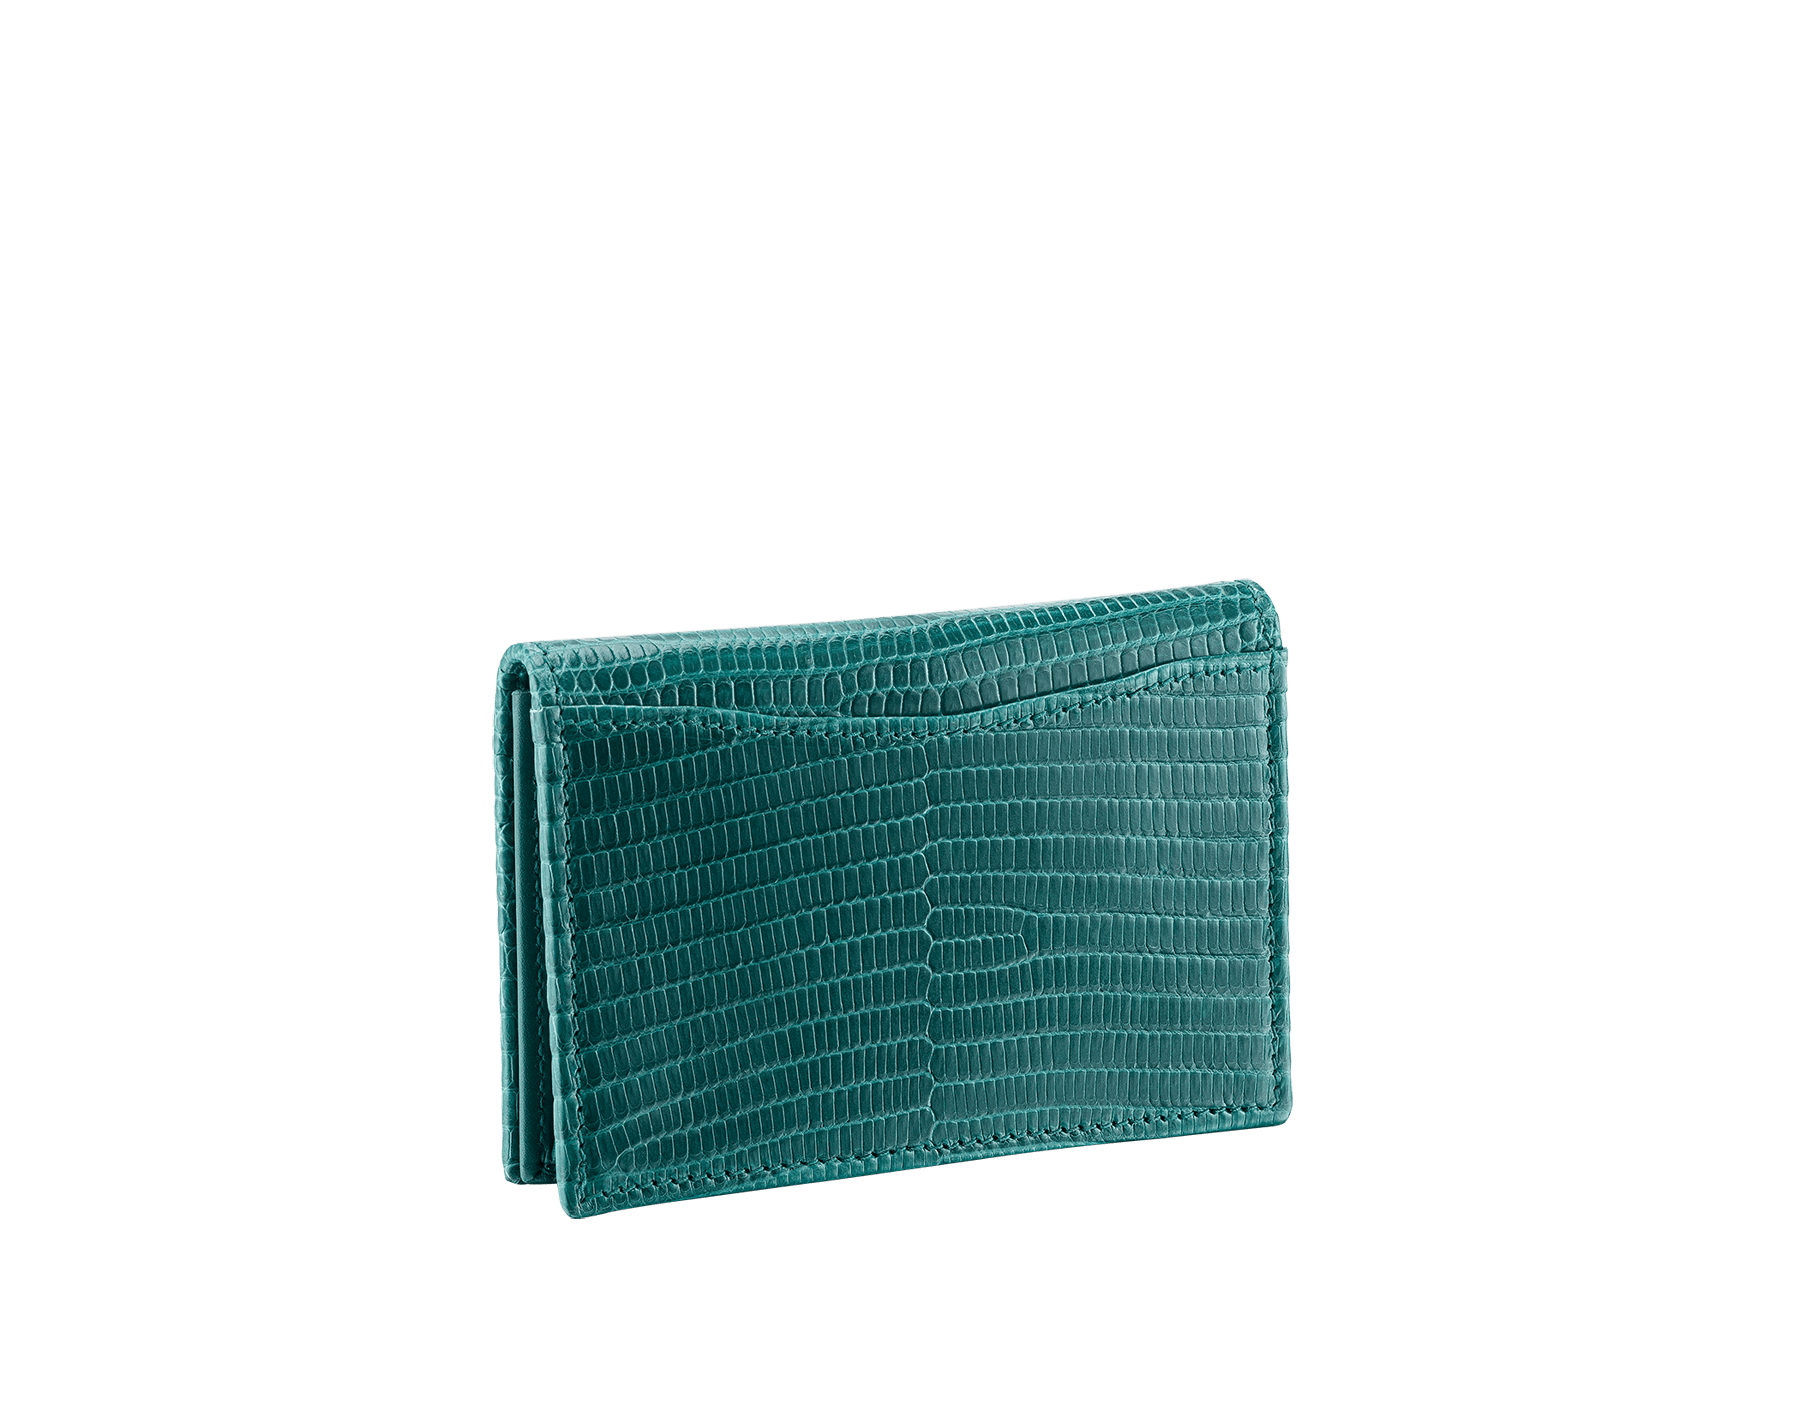 BVLGARI BVLGARI business card holder in forest emerald shiny lizard skin, with brass palladium plated logo décor. 289395 image 3